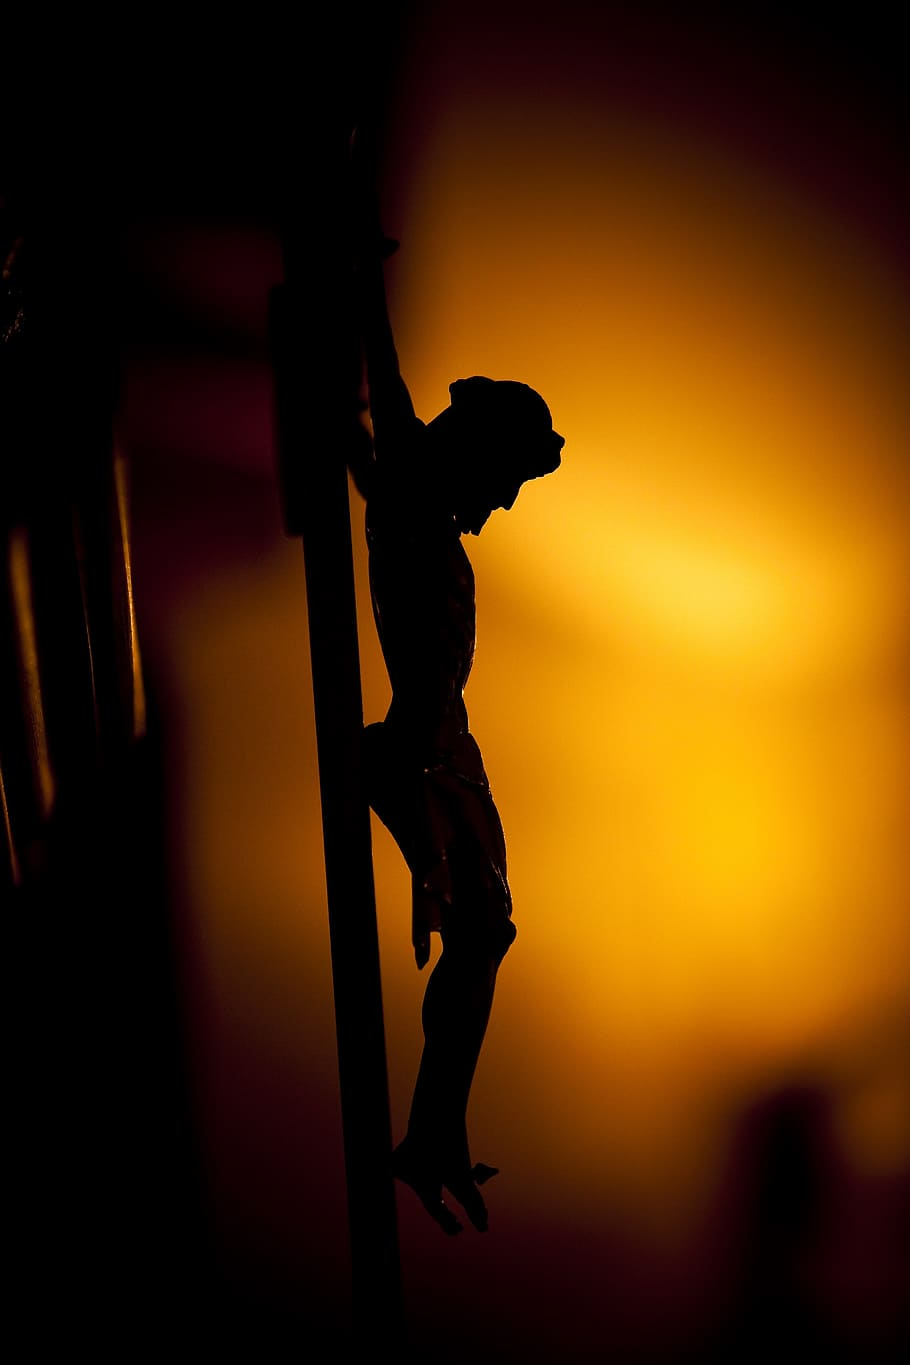 Hd Wallpaper Silhouette Photo Of Crucifix Jesus Christ Christ Figure Cross Wallpaper Flare